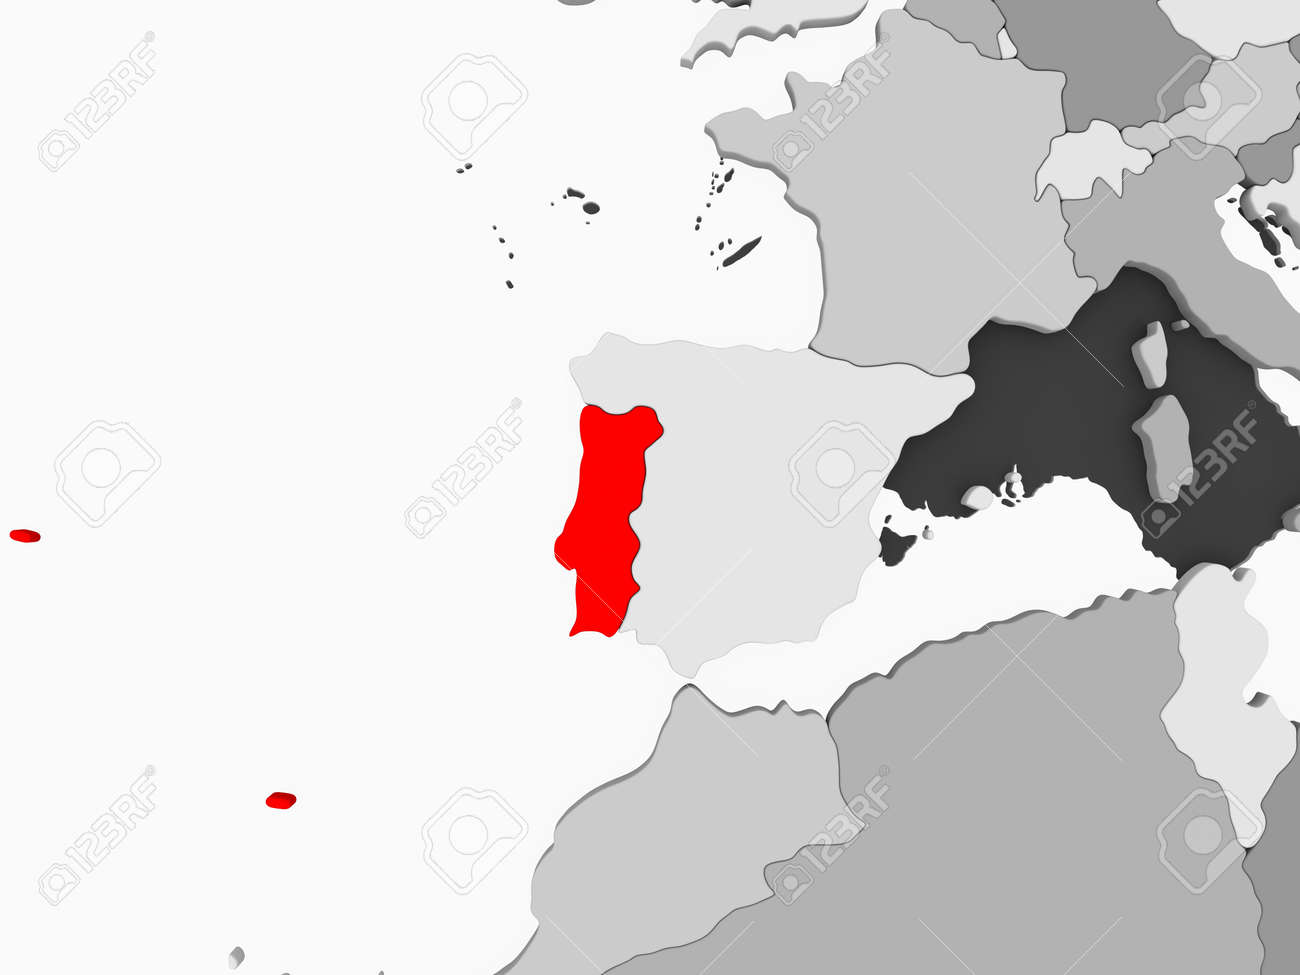 Portugal In Red On Grey Political Map With Transparent Oceans